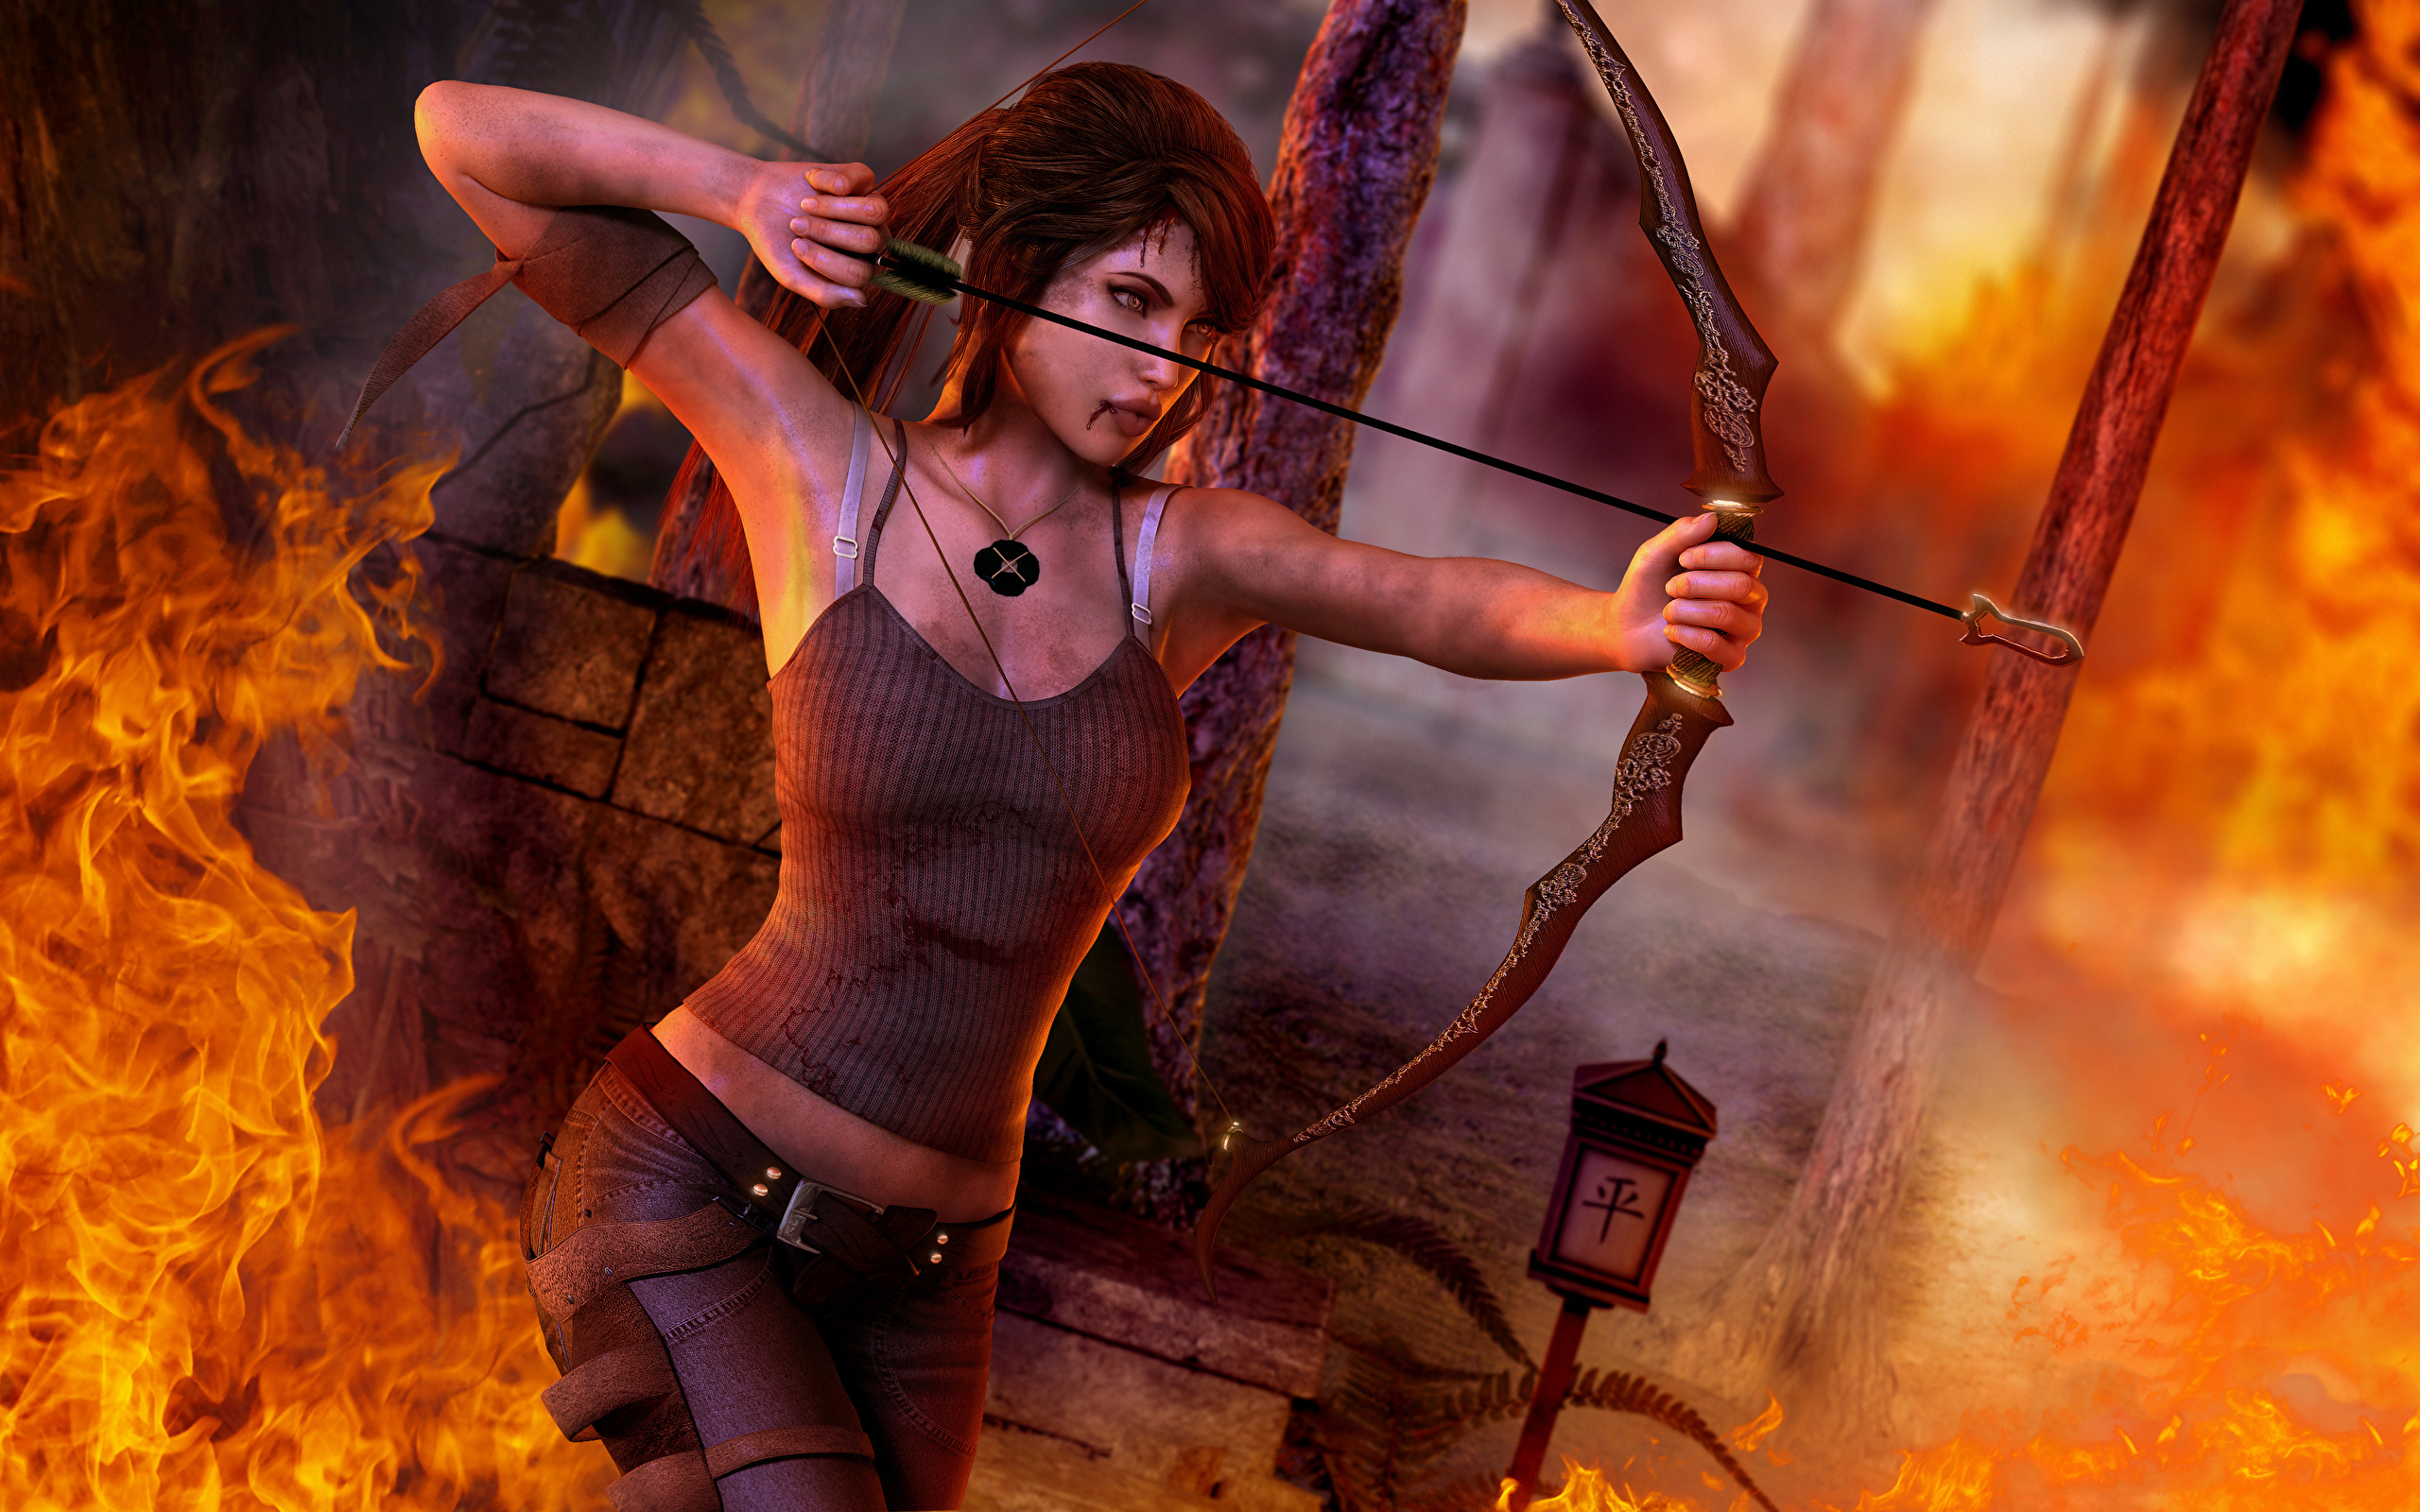 Tomb raider blood anime porn erotic photos